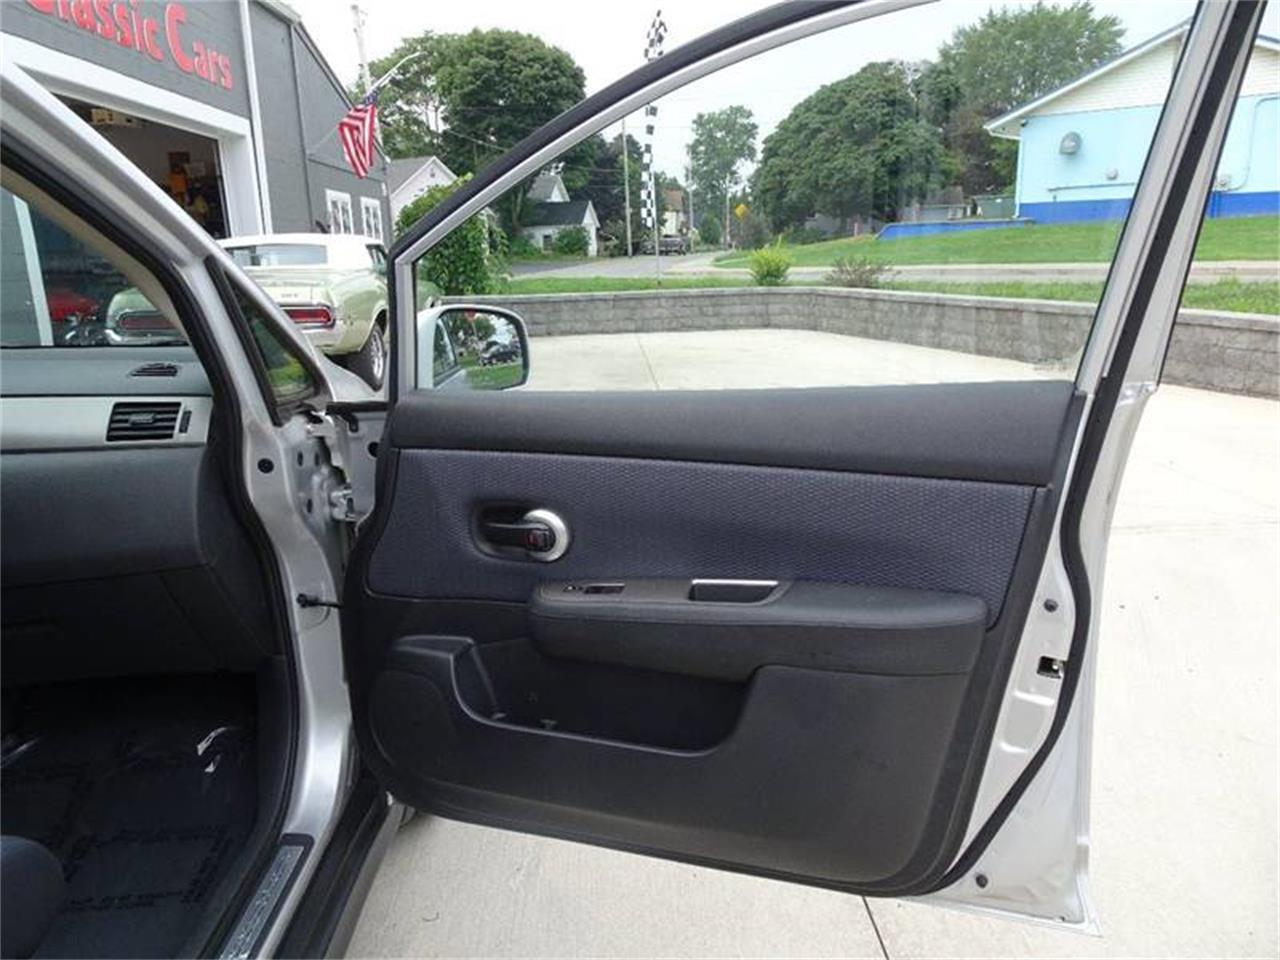 2007 Nissan Versa for sale in Hilton, NY – photo 76